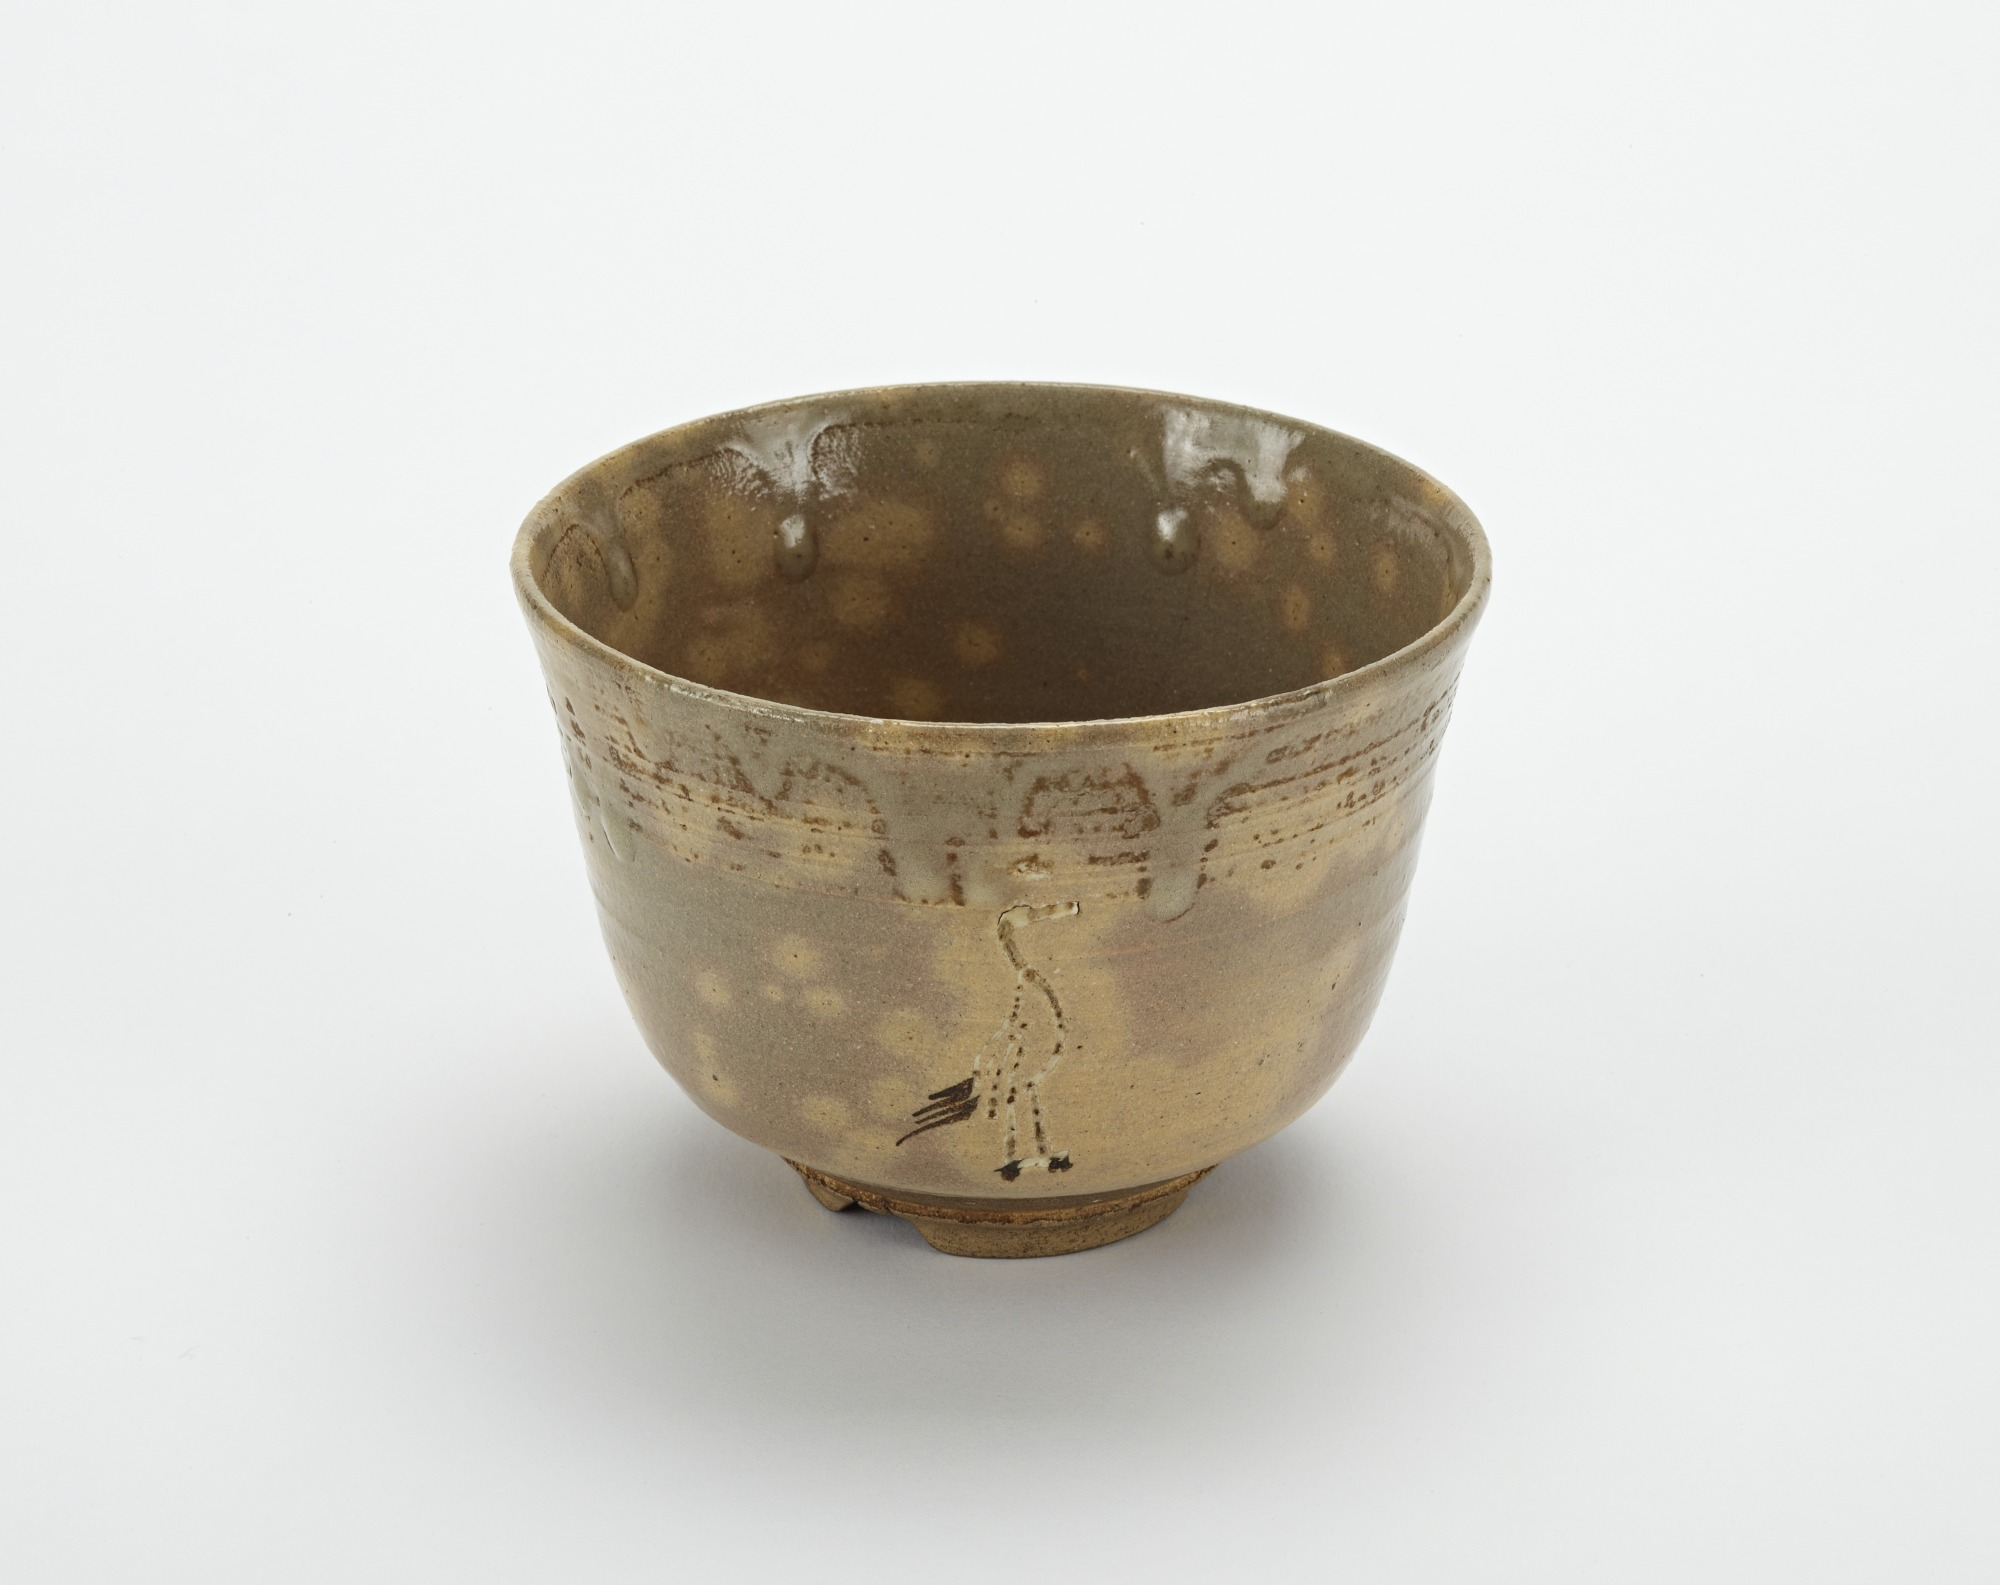 : Akahada ware tea bowl with design of standing cranes